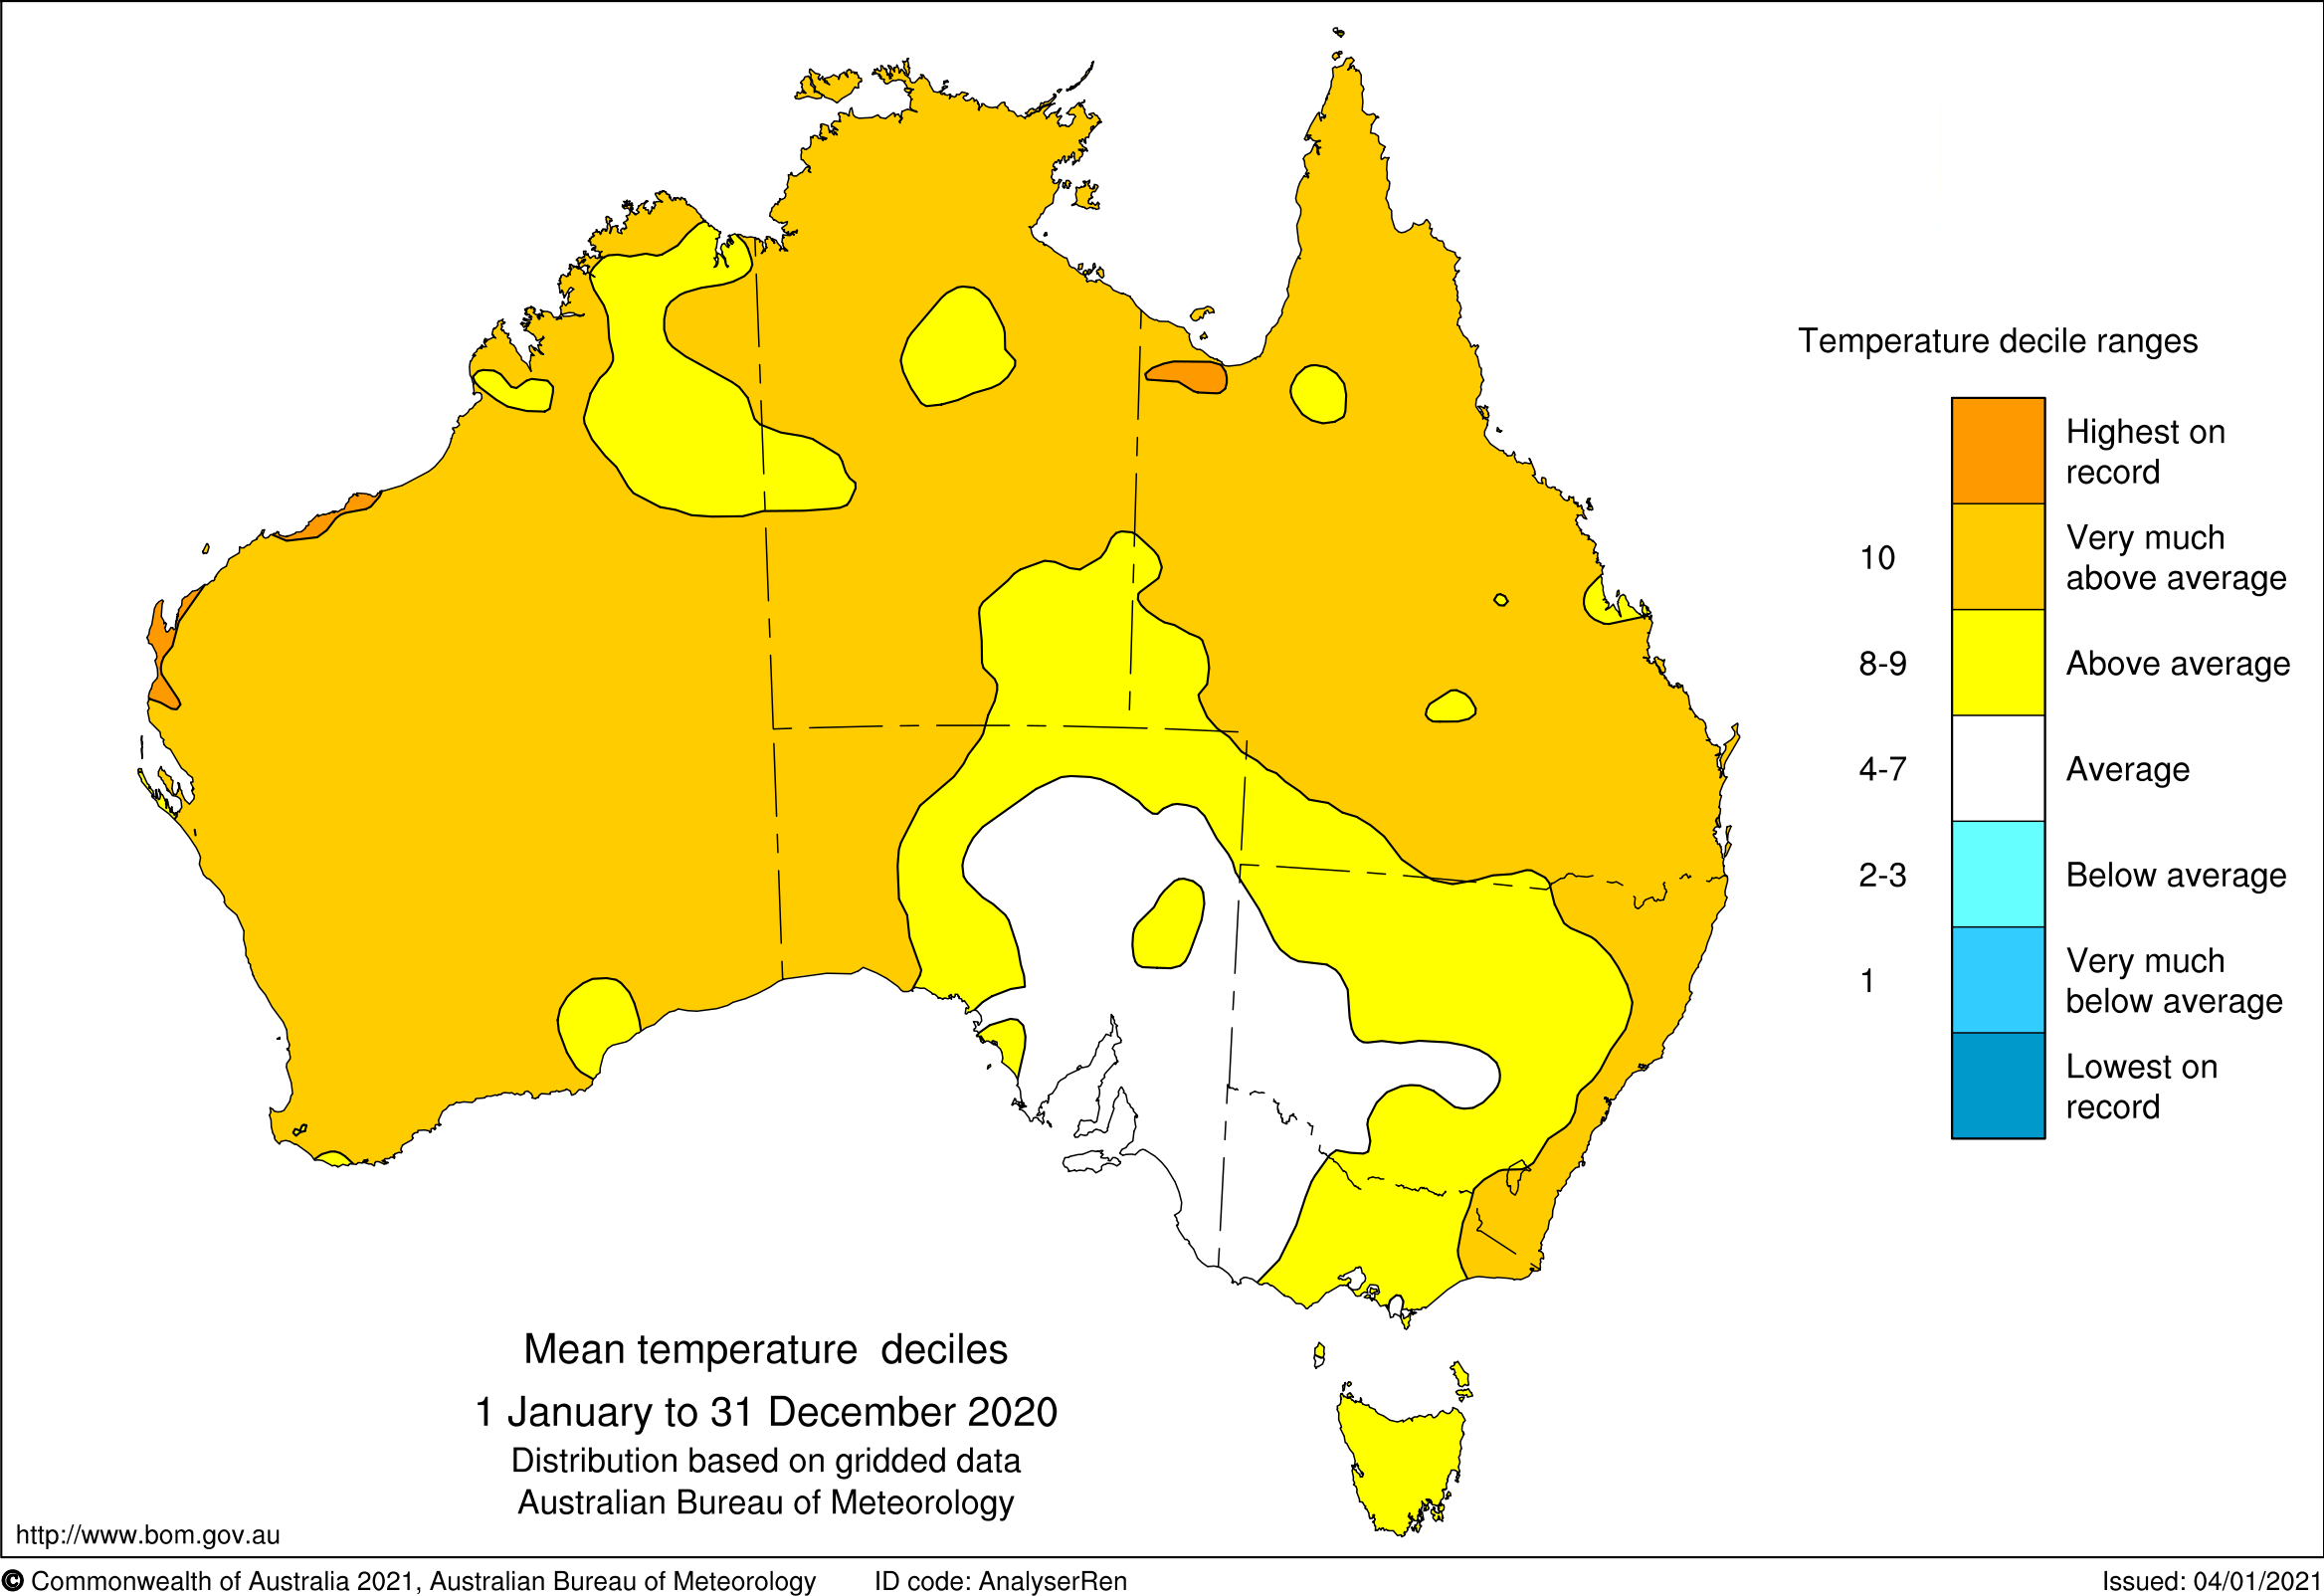 Map of Australia showing mean temperature deciles as warmer than average for most of Australia, as described in the text.